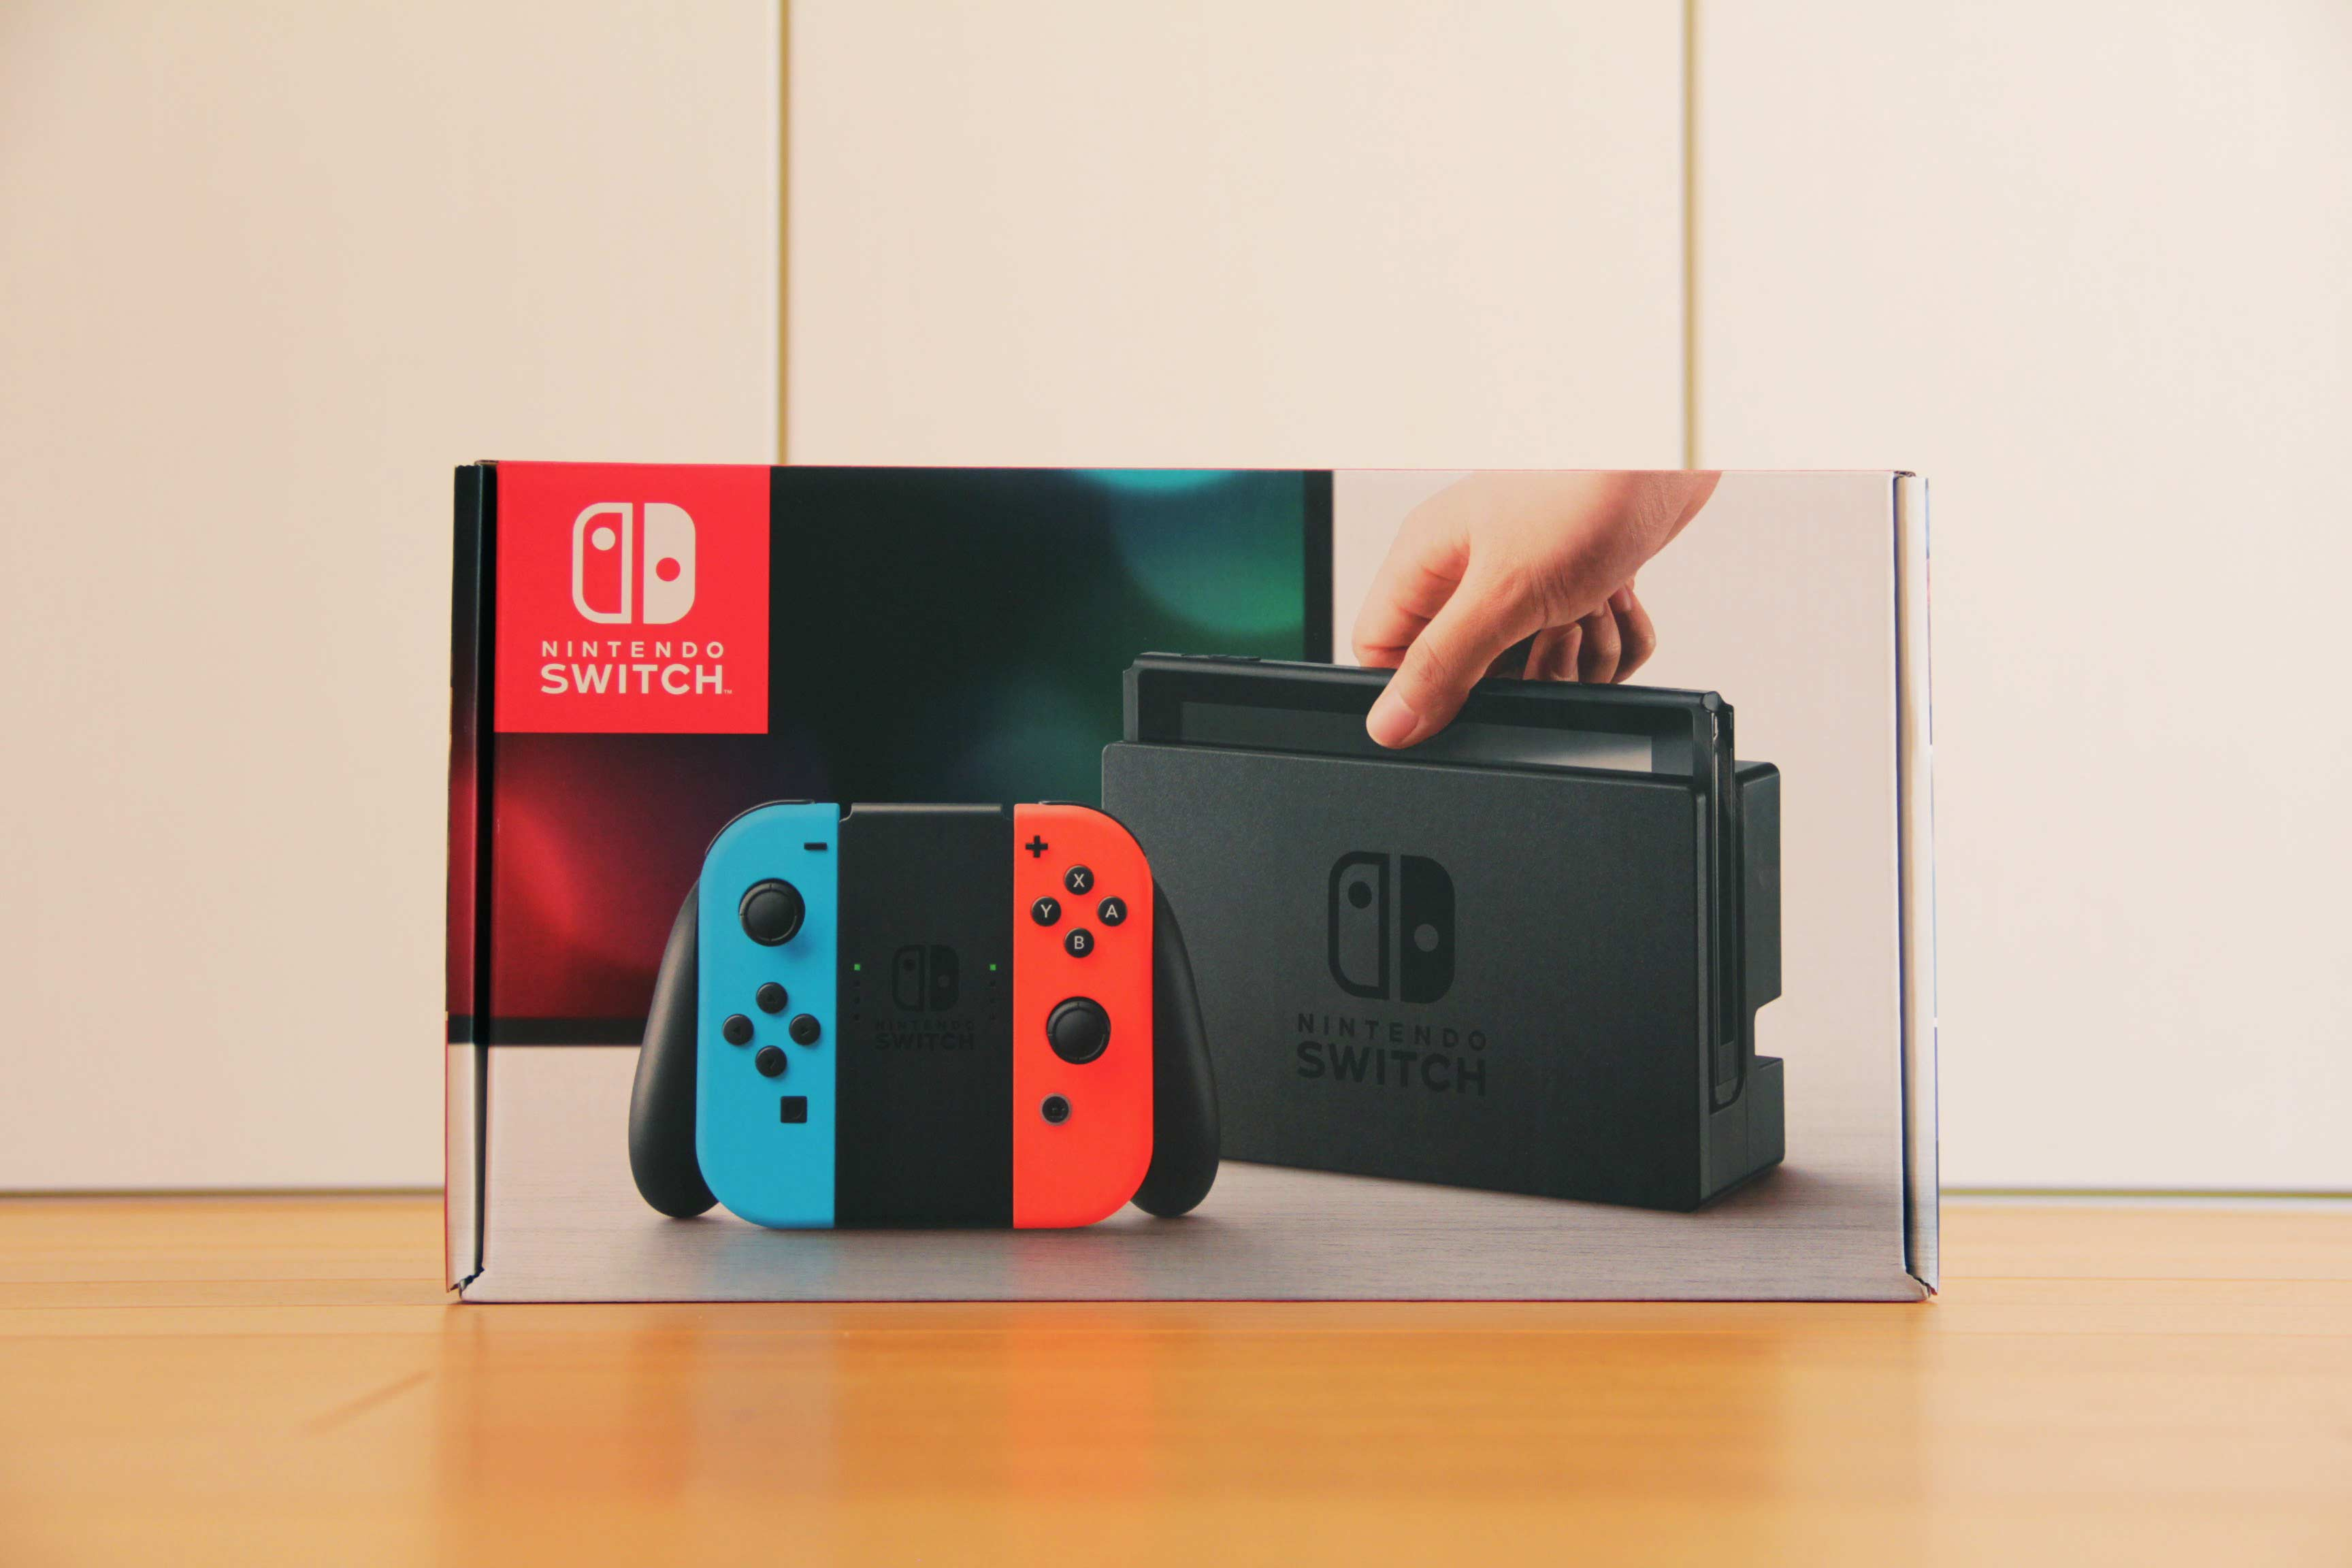 Nintendo switch本体の写真